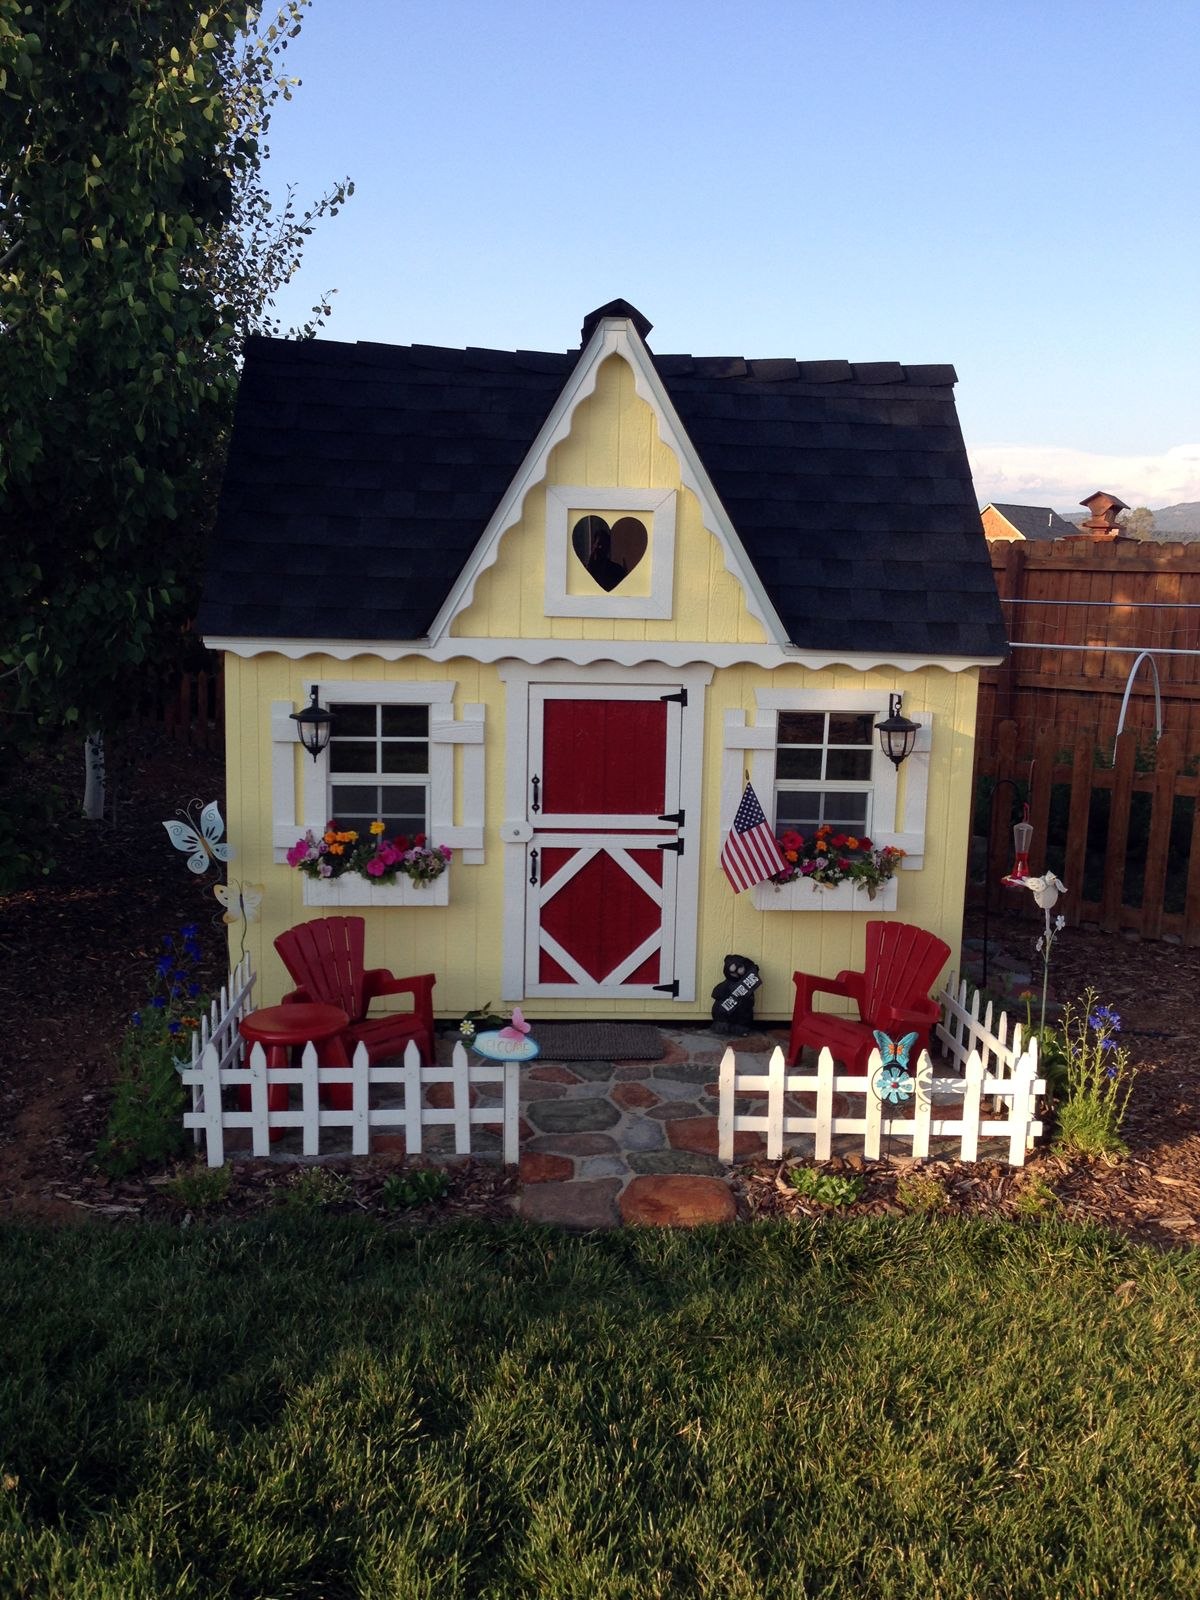 2012 Most Beautiful Cottage Contest Winner Wood Outdoor Victorian Playhouse Kit Completed By